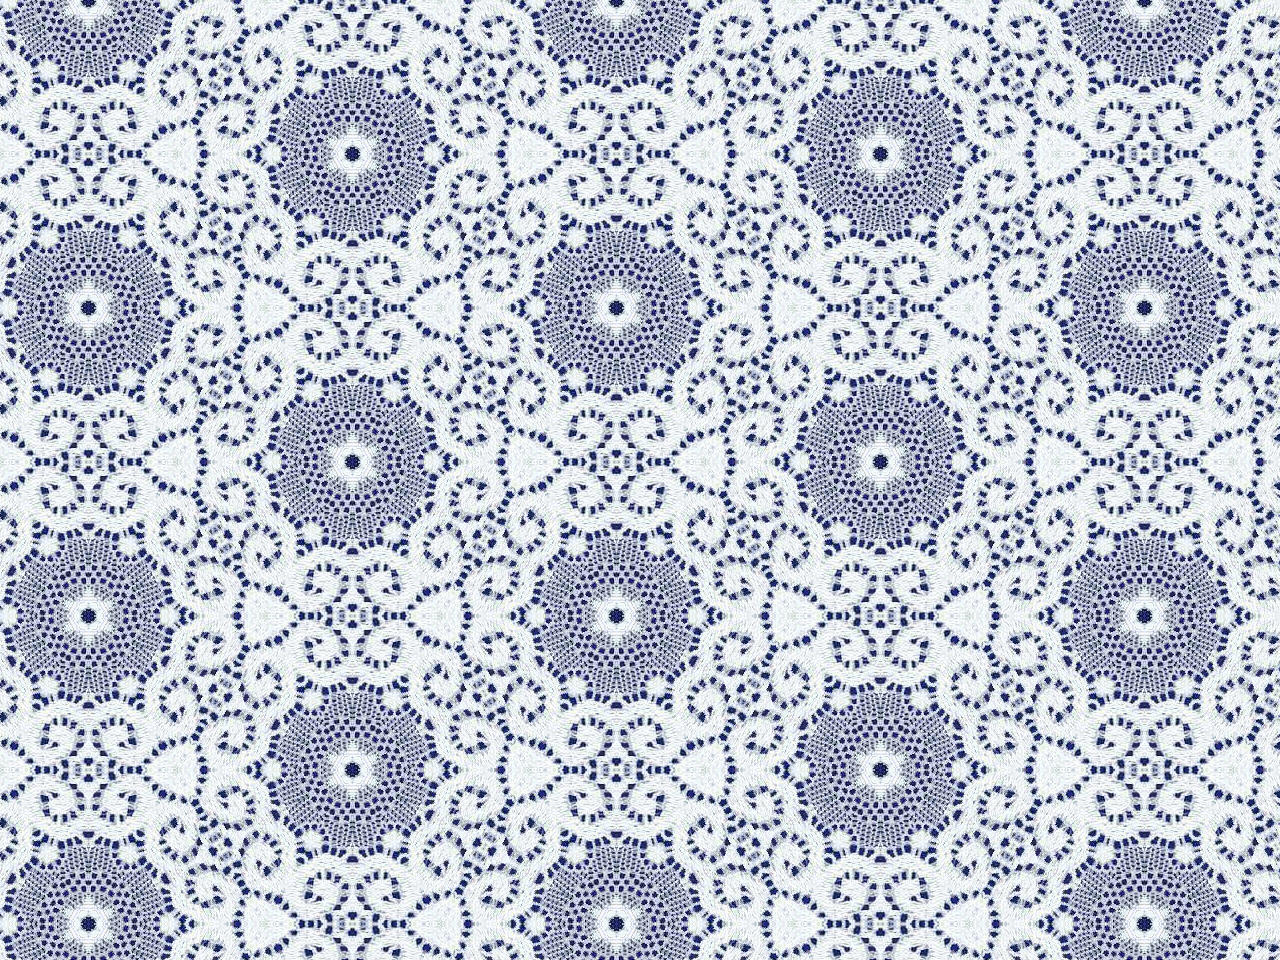 Artbyjean Images Of Lace White Over Blue Fabric In Backgrounds Clip Art Prints For Your Decoupage And Paper Crafts